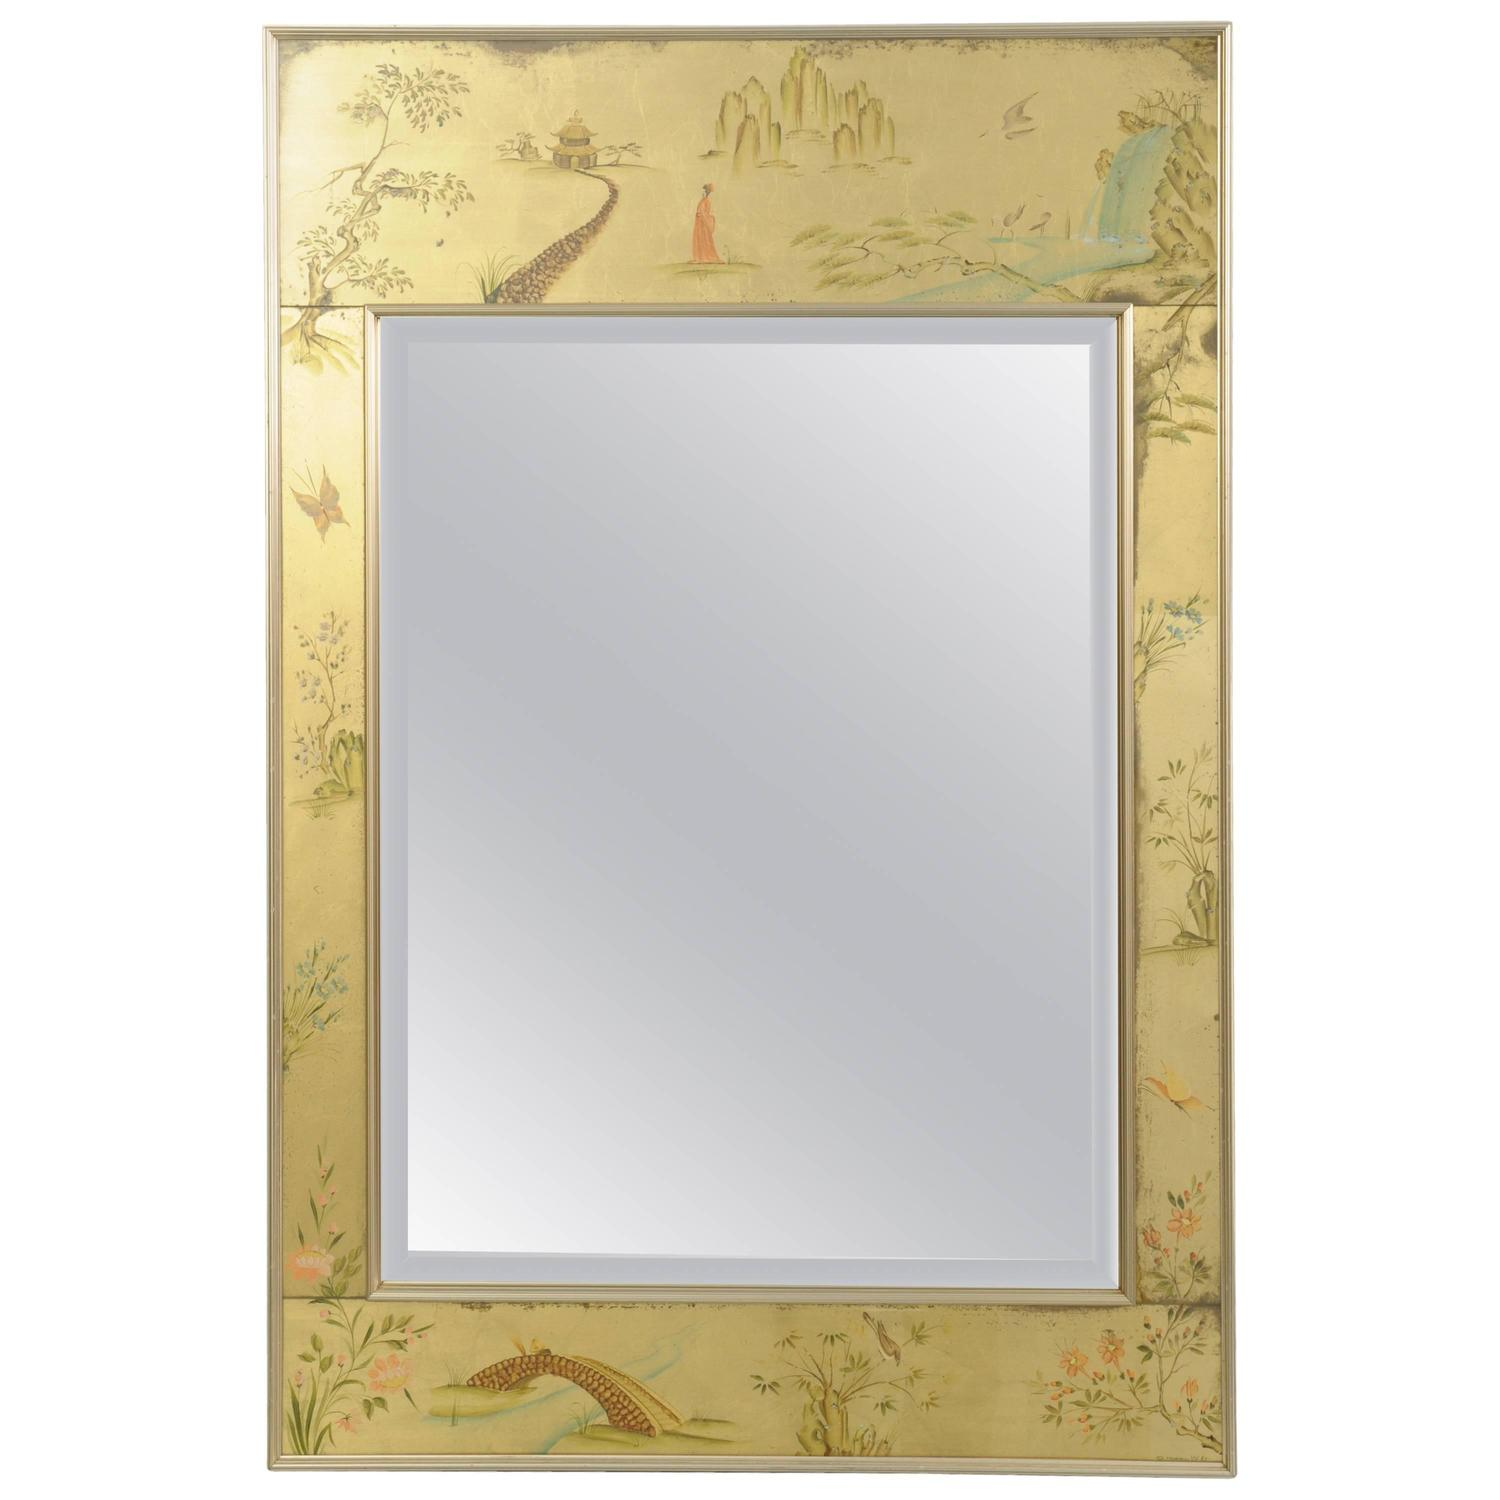 Labarge Chinoiserie Style Gold Églomisé Wall Mirror Reverse Painted Asian Signed